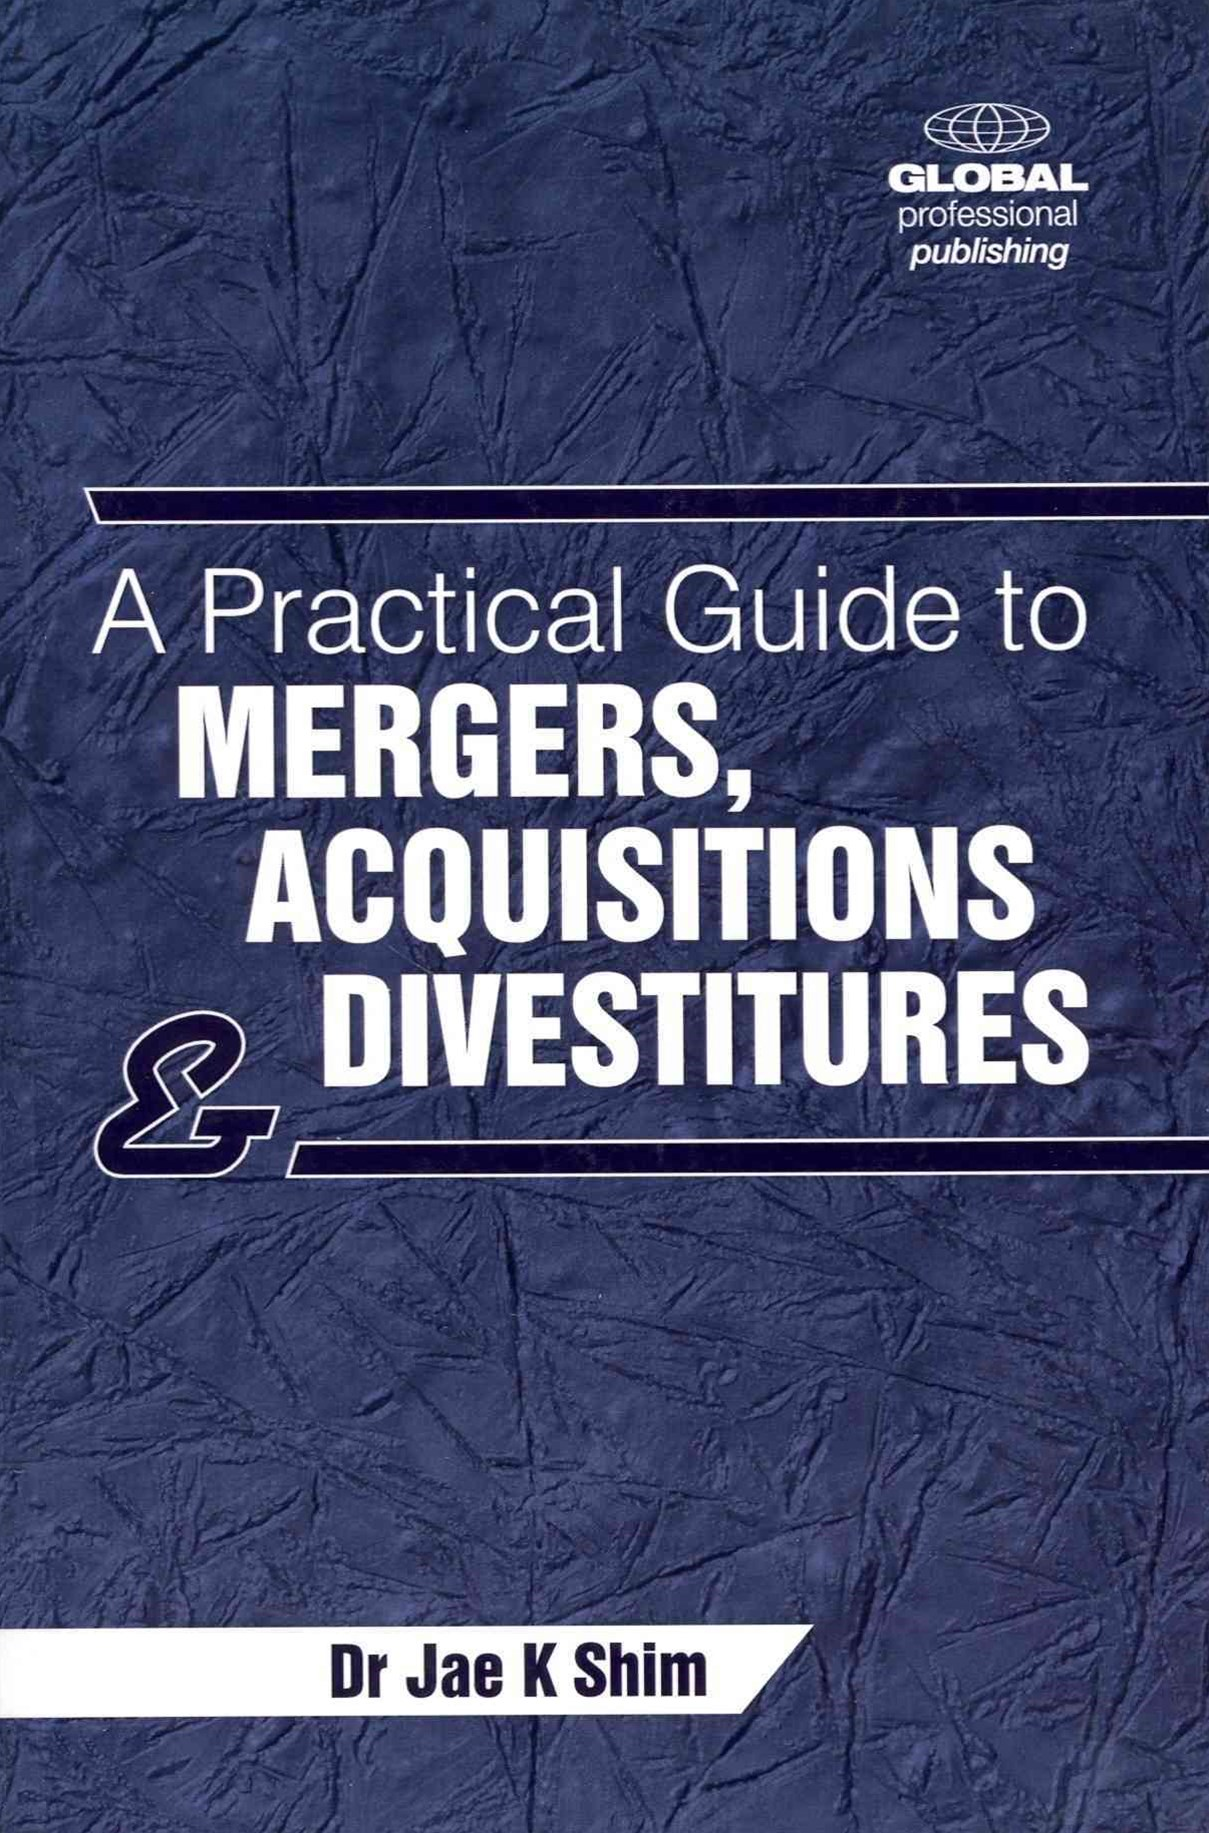 Practical Guide to Mergers, Acquisitions and Divestitures